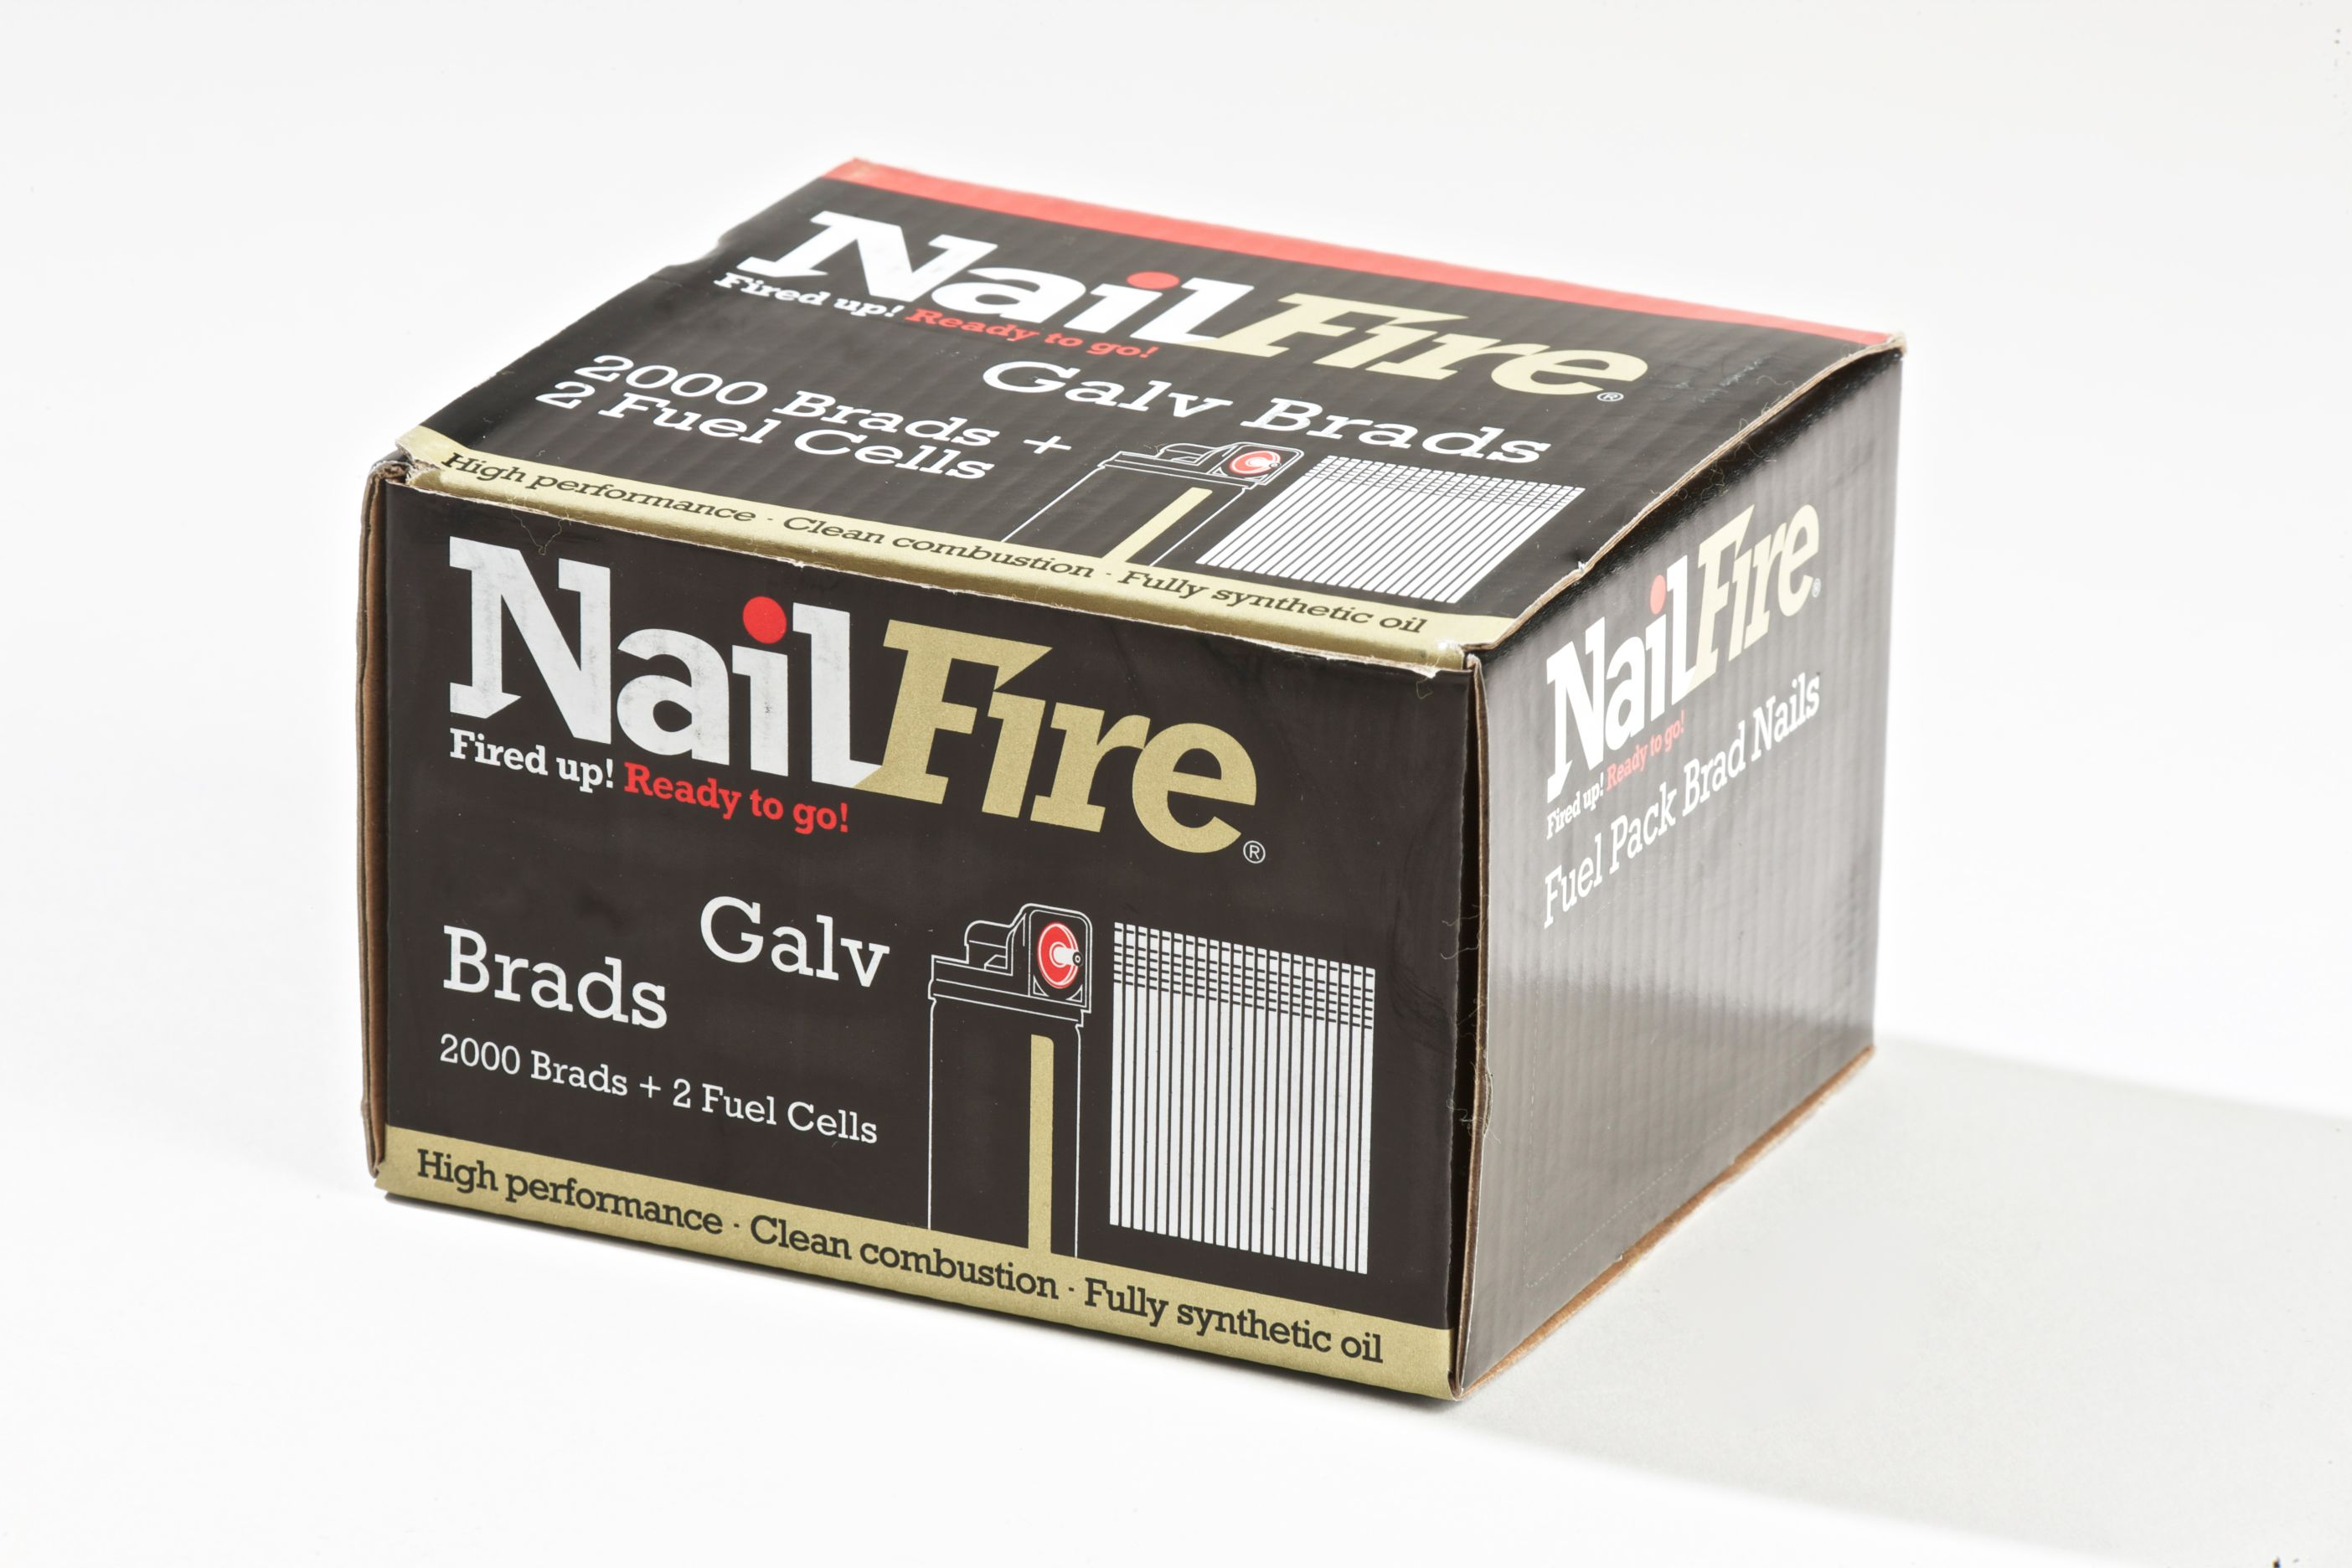 NAILFIRE 2ND FIX STRAIGHT E-GALV BRAD & FUEL PACK 64MM (TUB OF 2000)